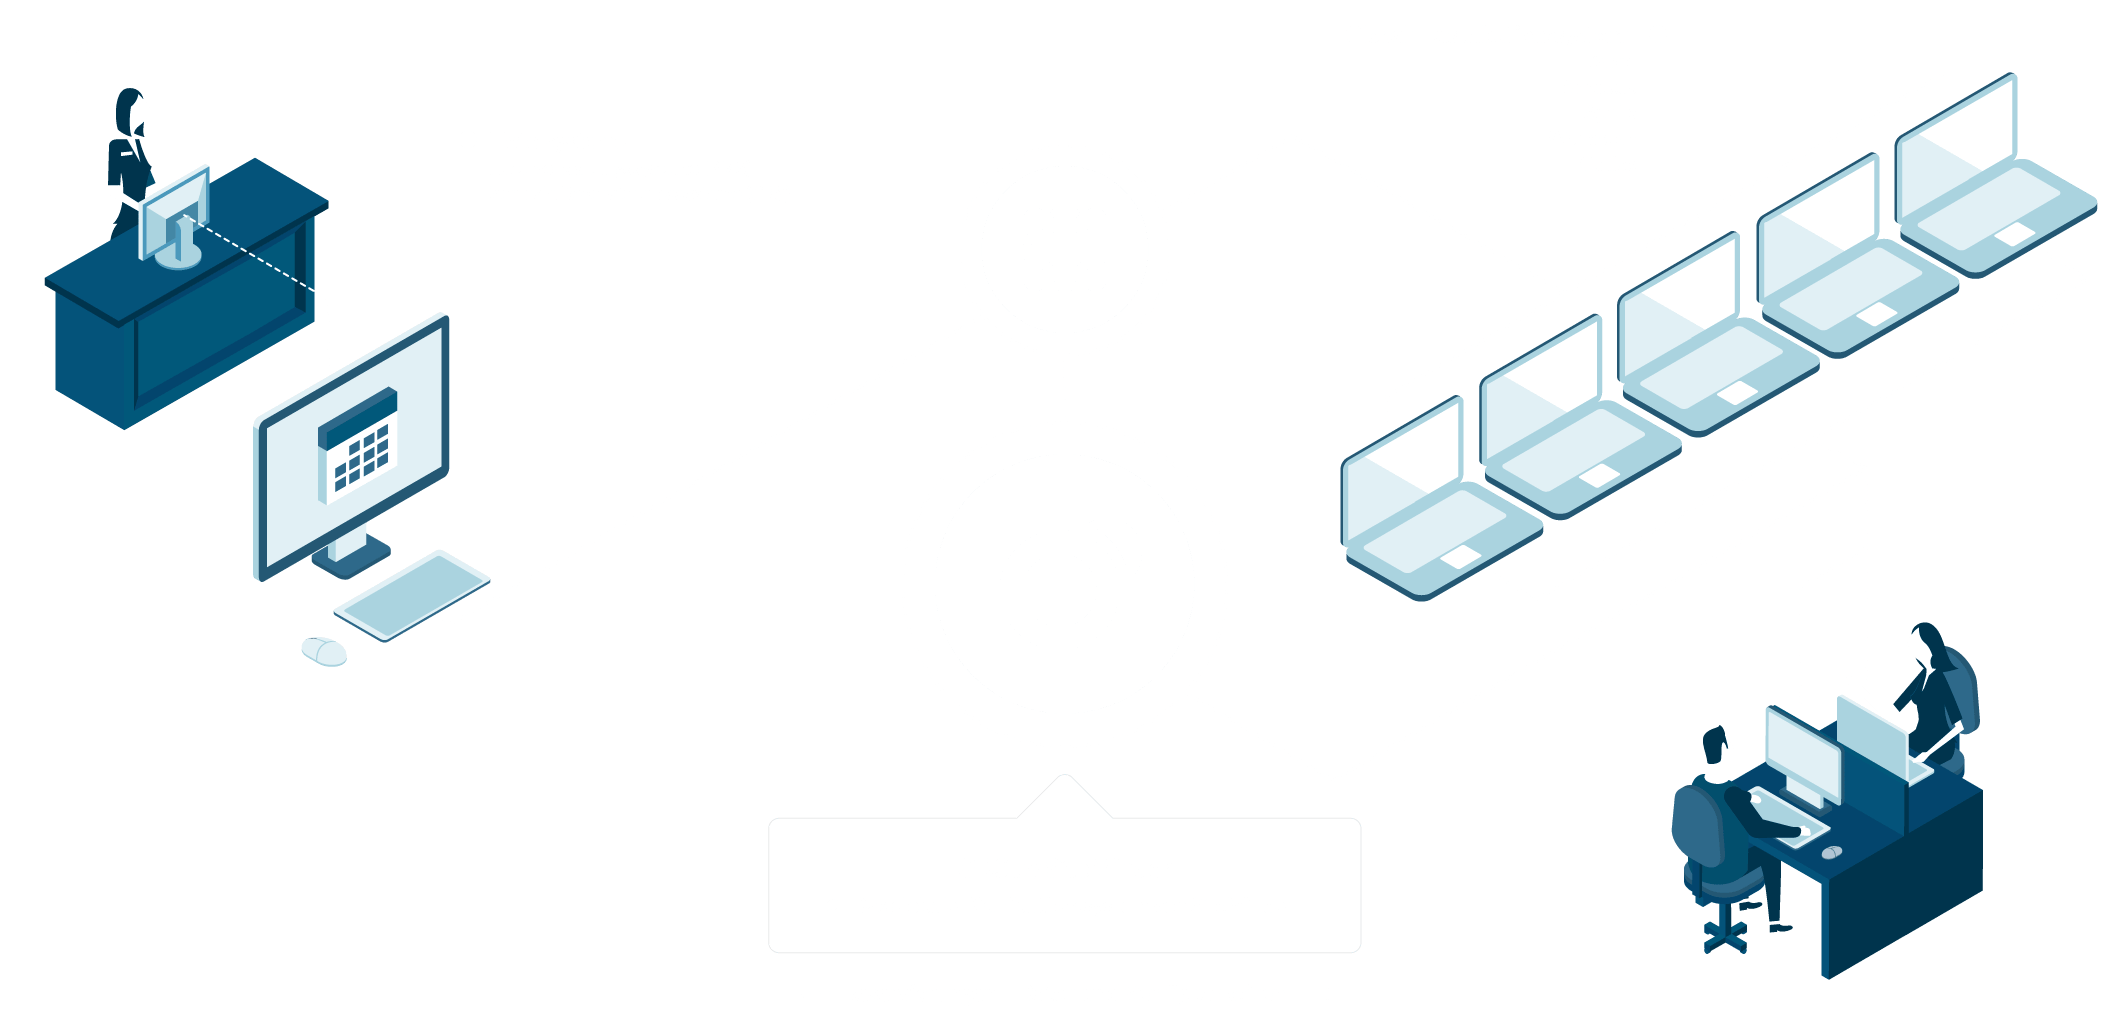 SiteMinder's Global Distribution System